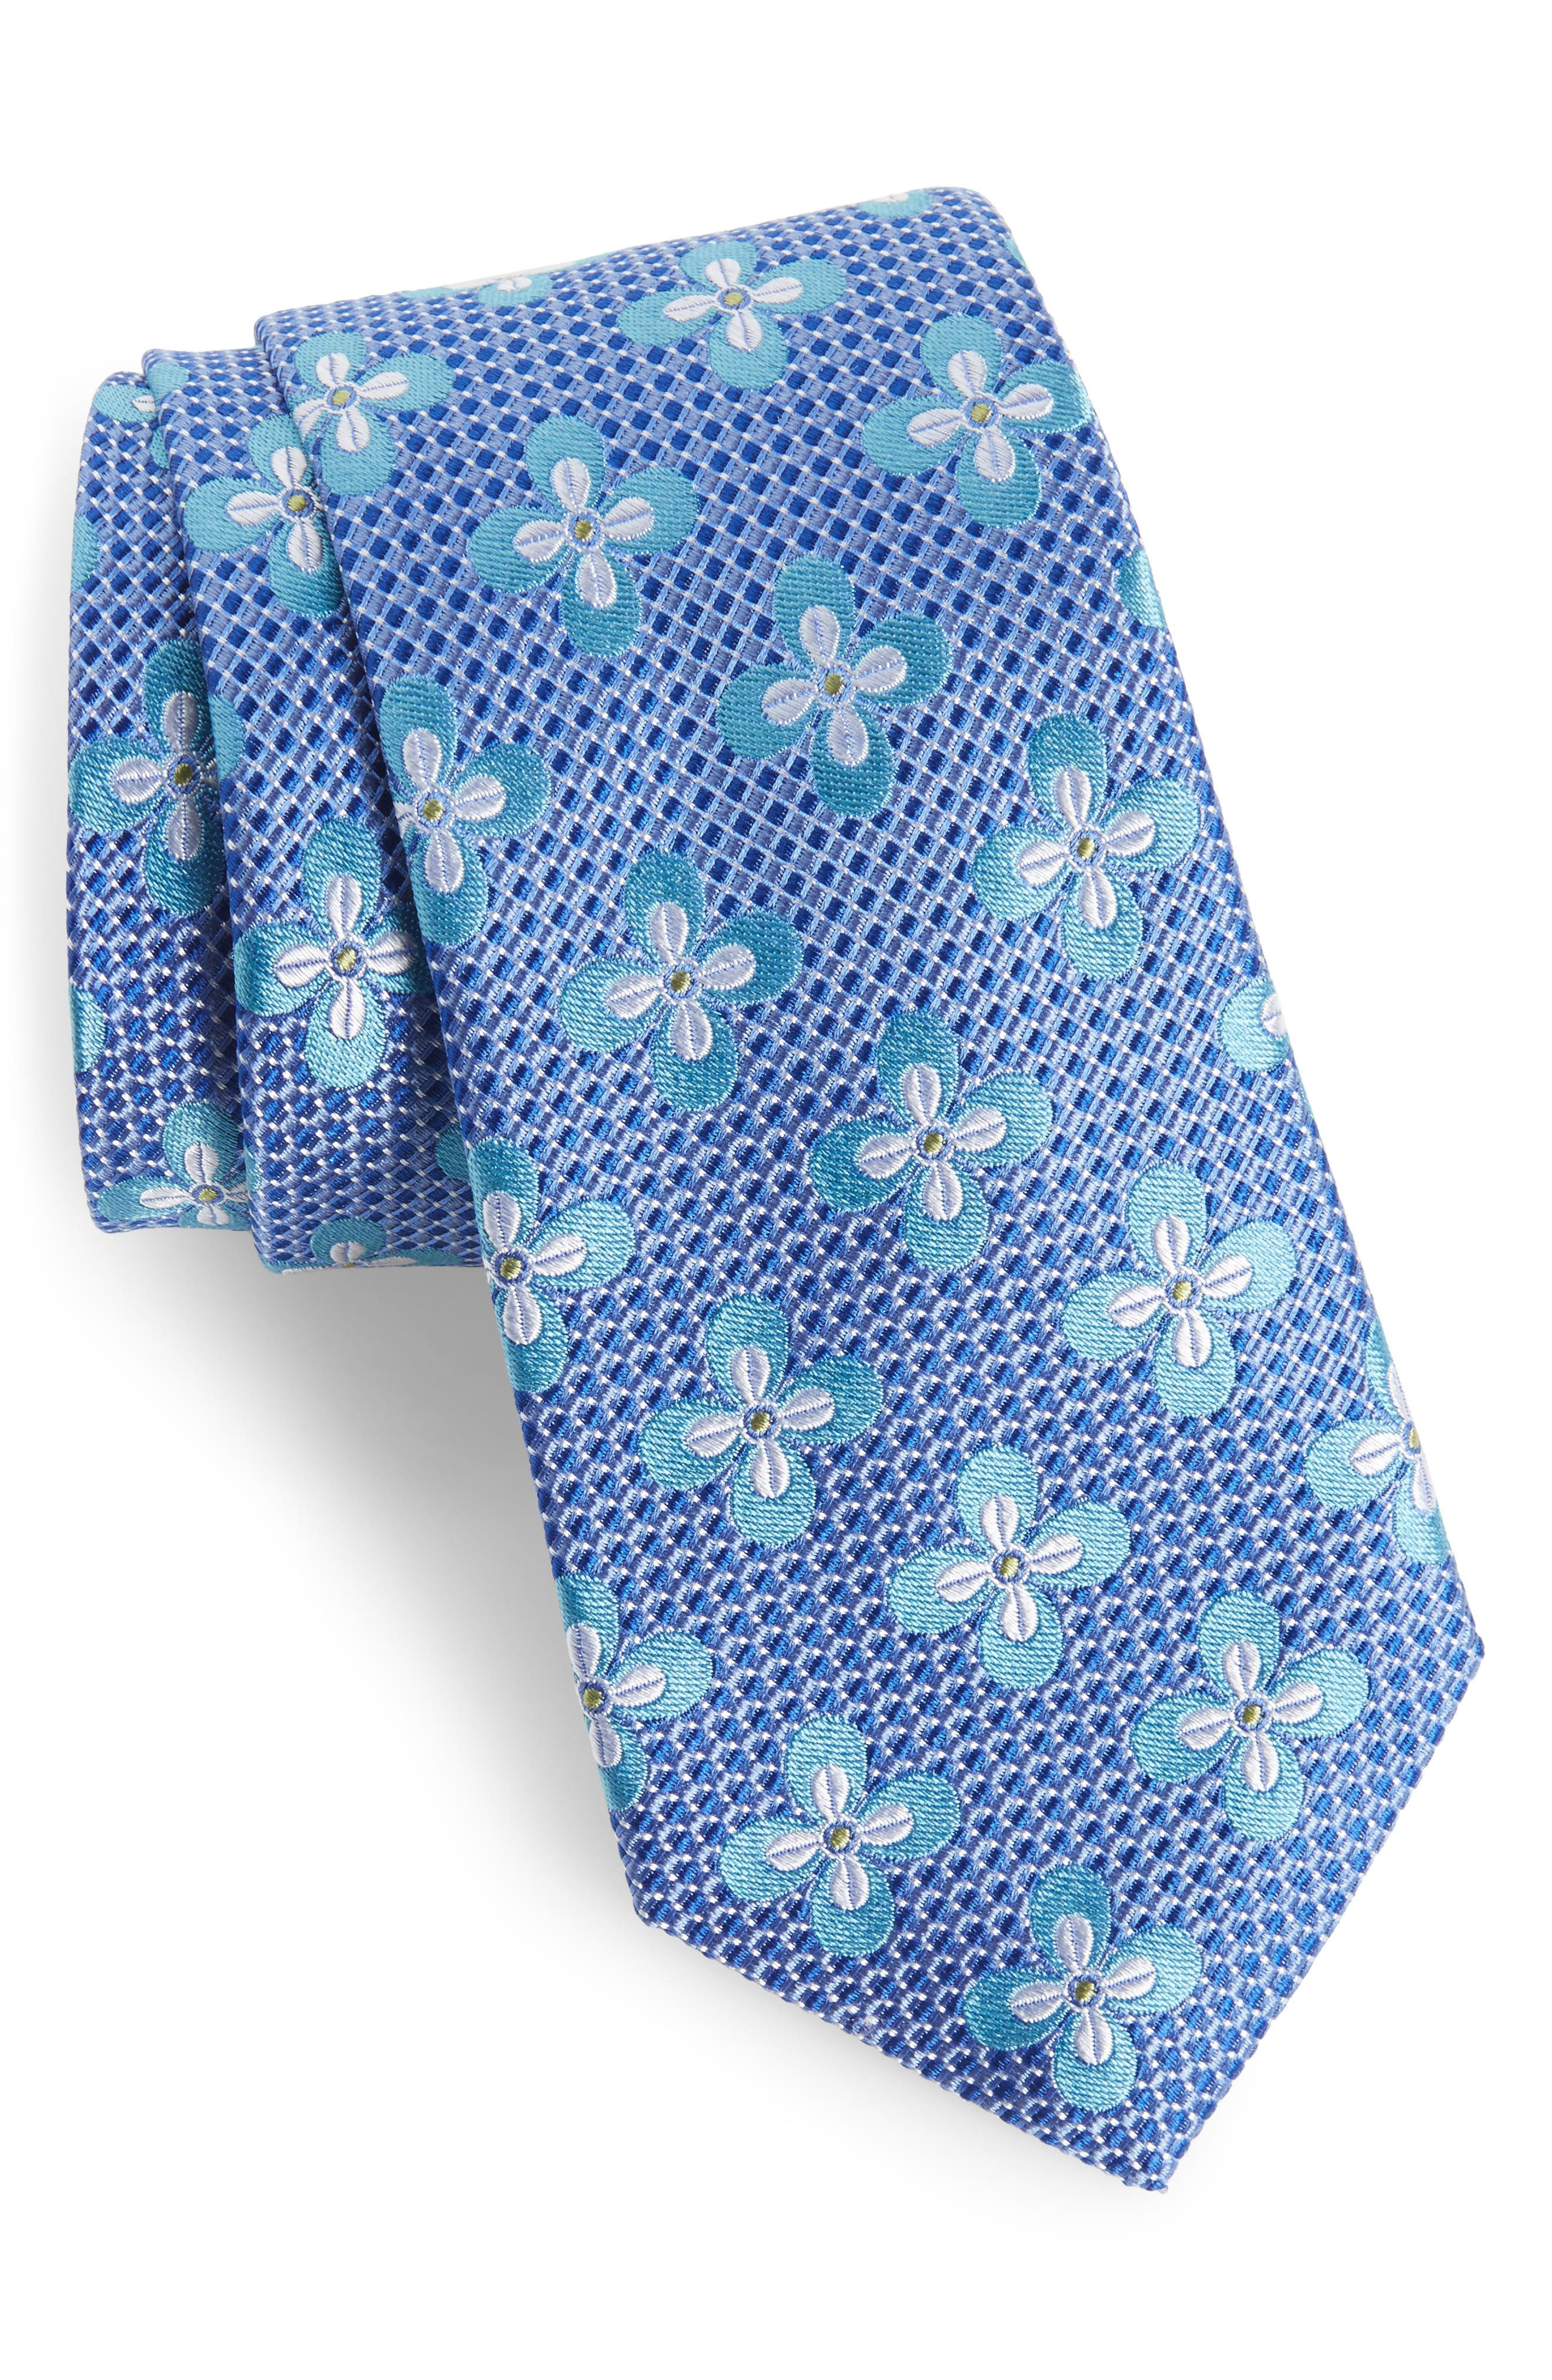 Main Image - Nordstrom Men's Shop Floral Silk Tie